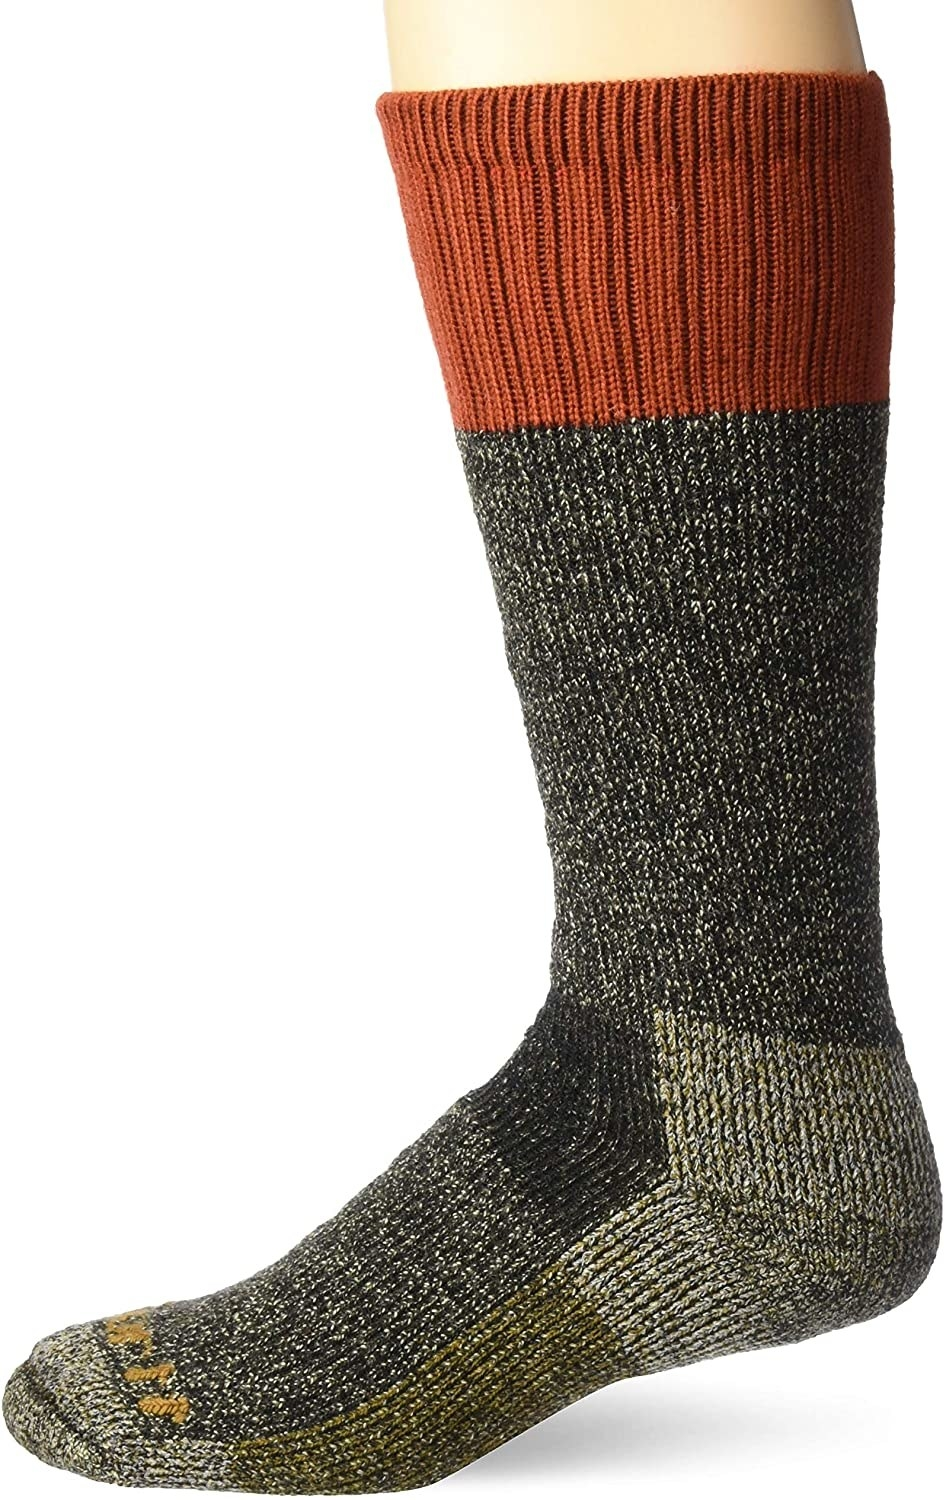 the cold weather sock in a green, gray, and orange color-blocked pattern